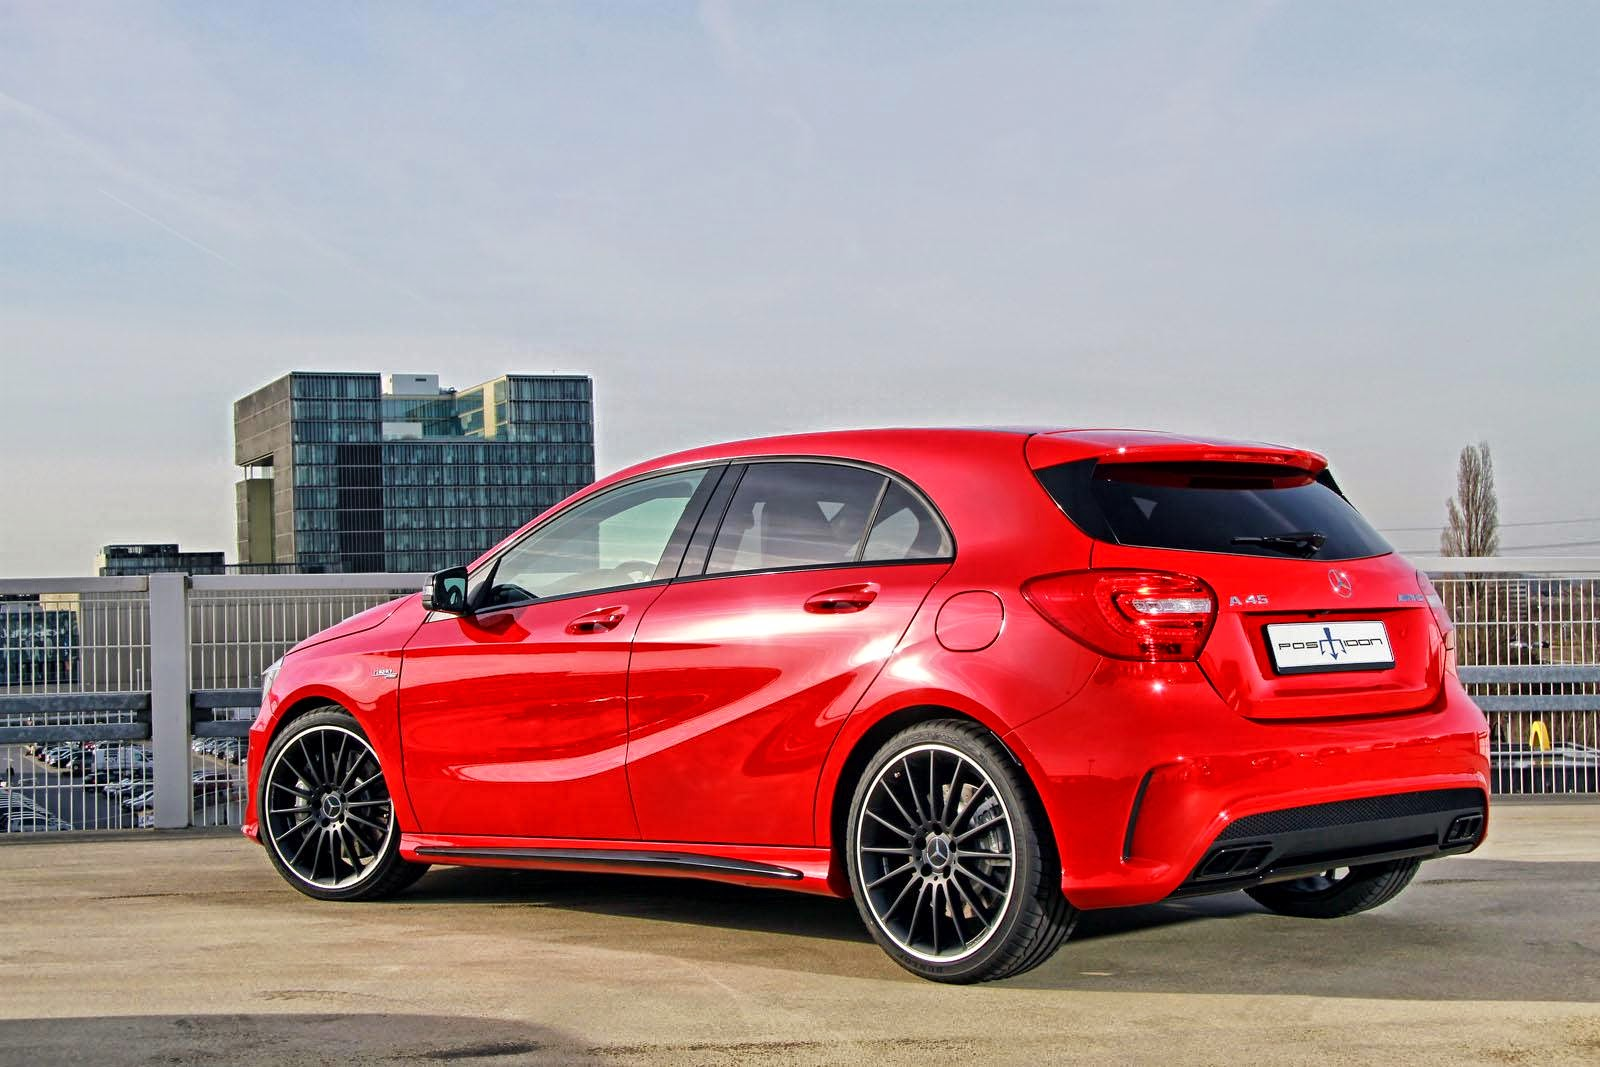 Mercedes benz w176 a45 amg by posaidon benztuning for Mercedes benz red